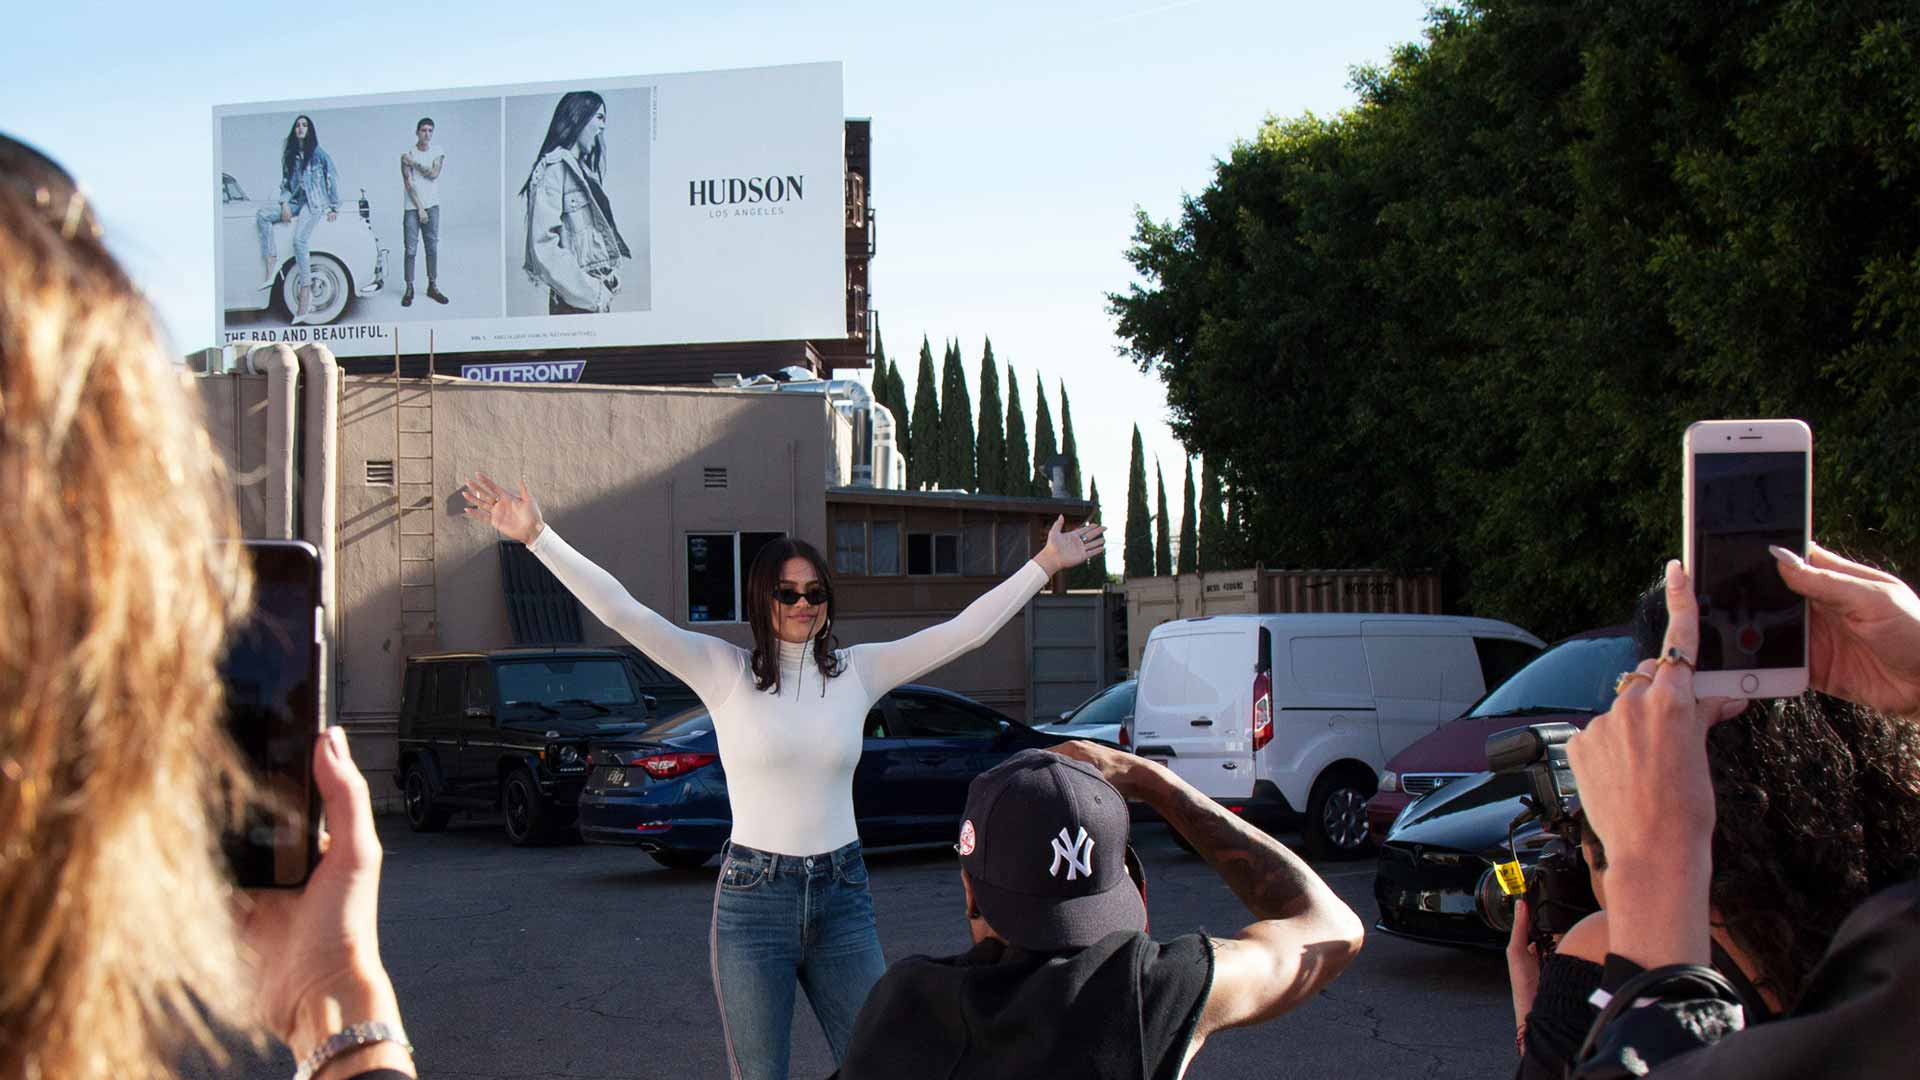 hudson jeans out of home advertising billboard in los angeles